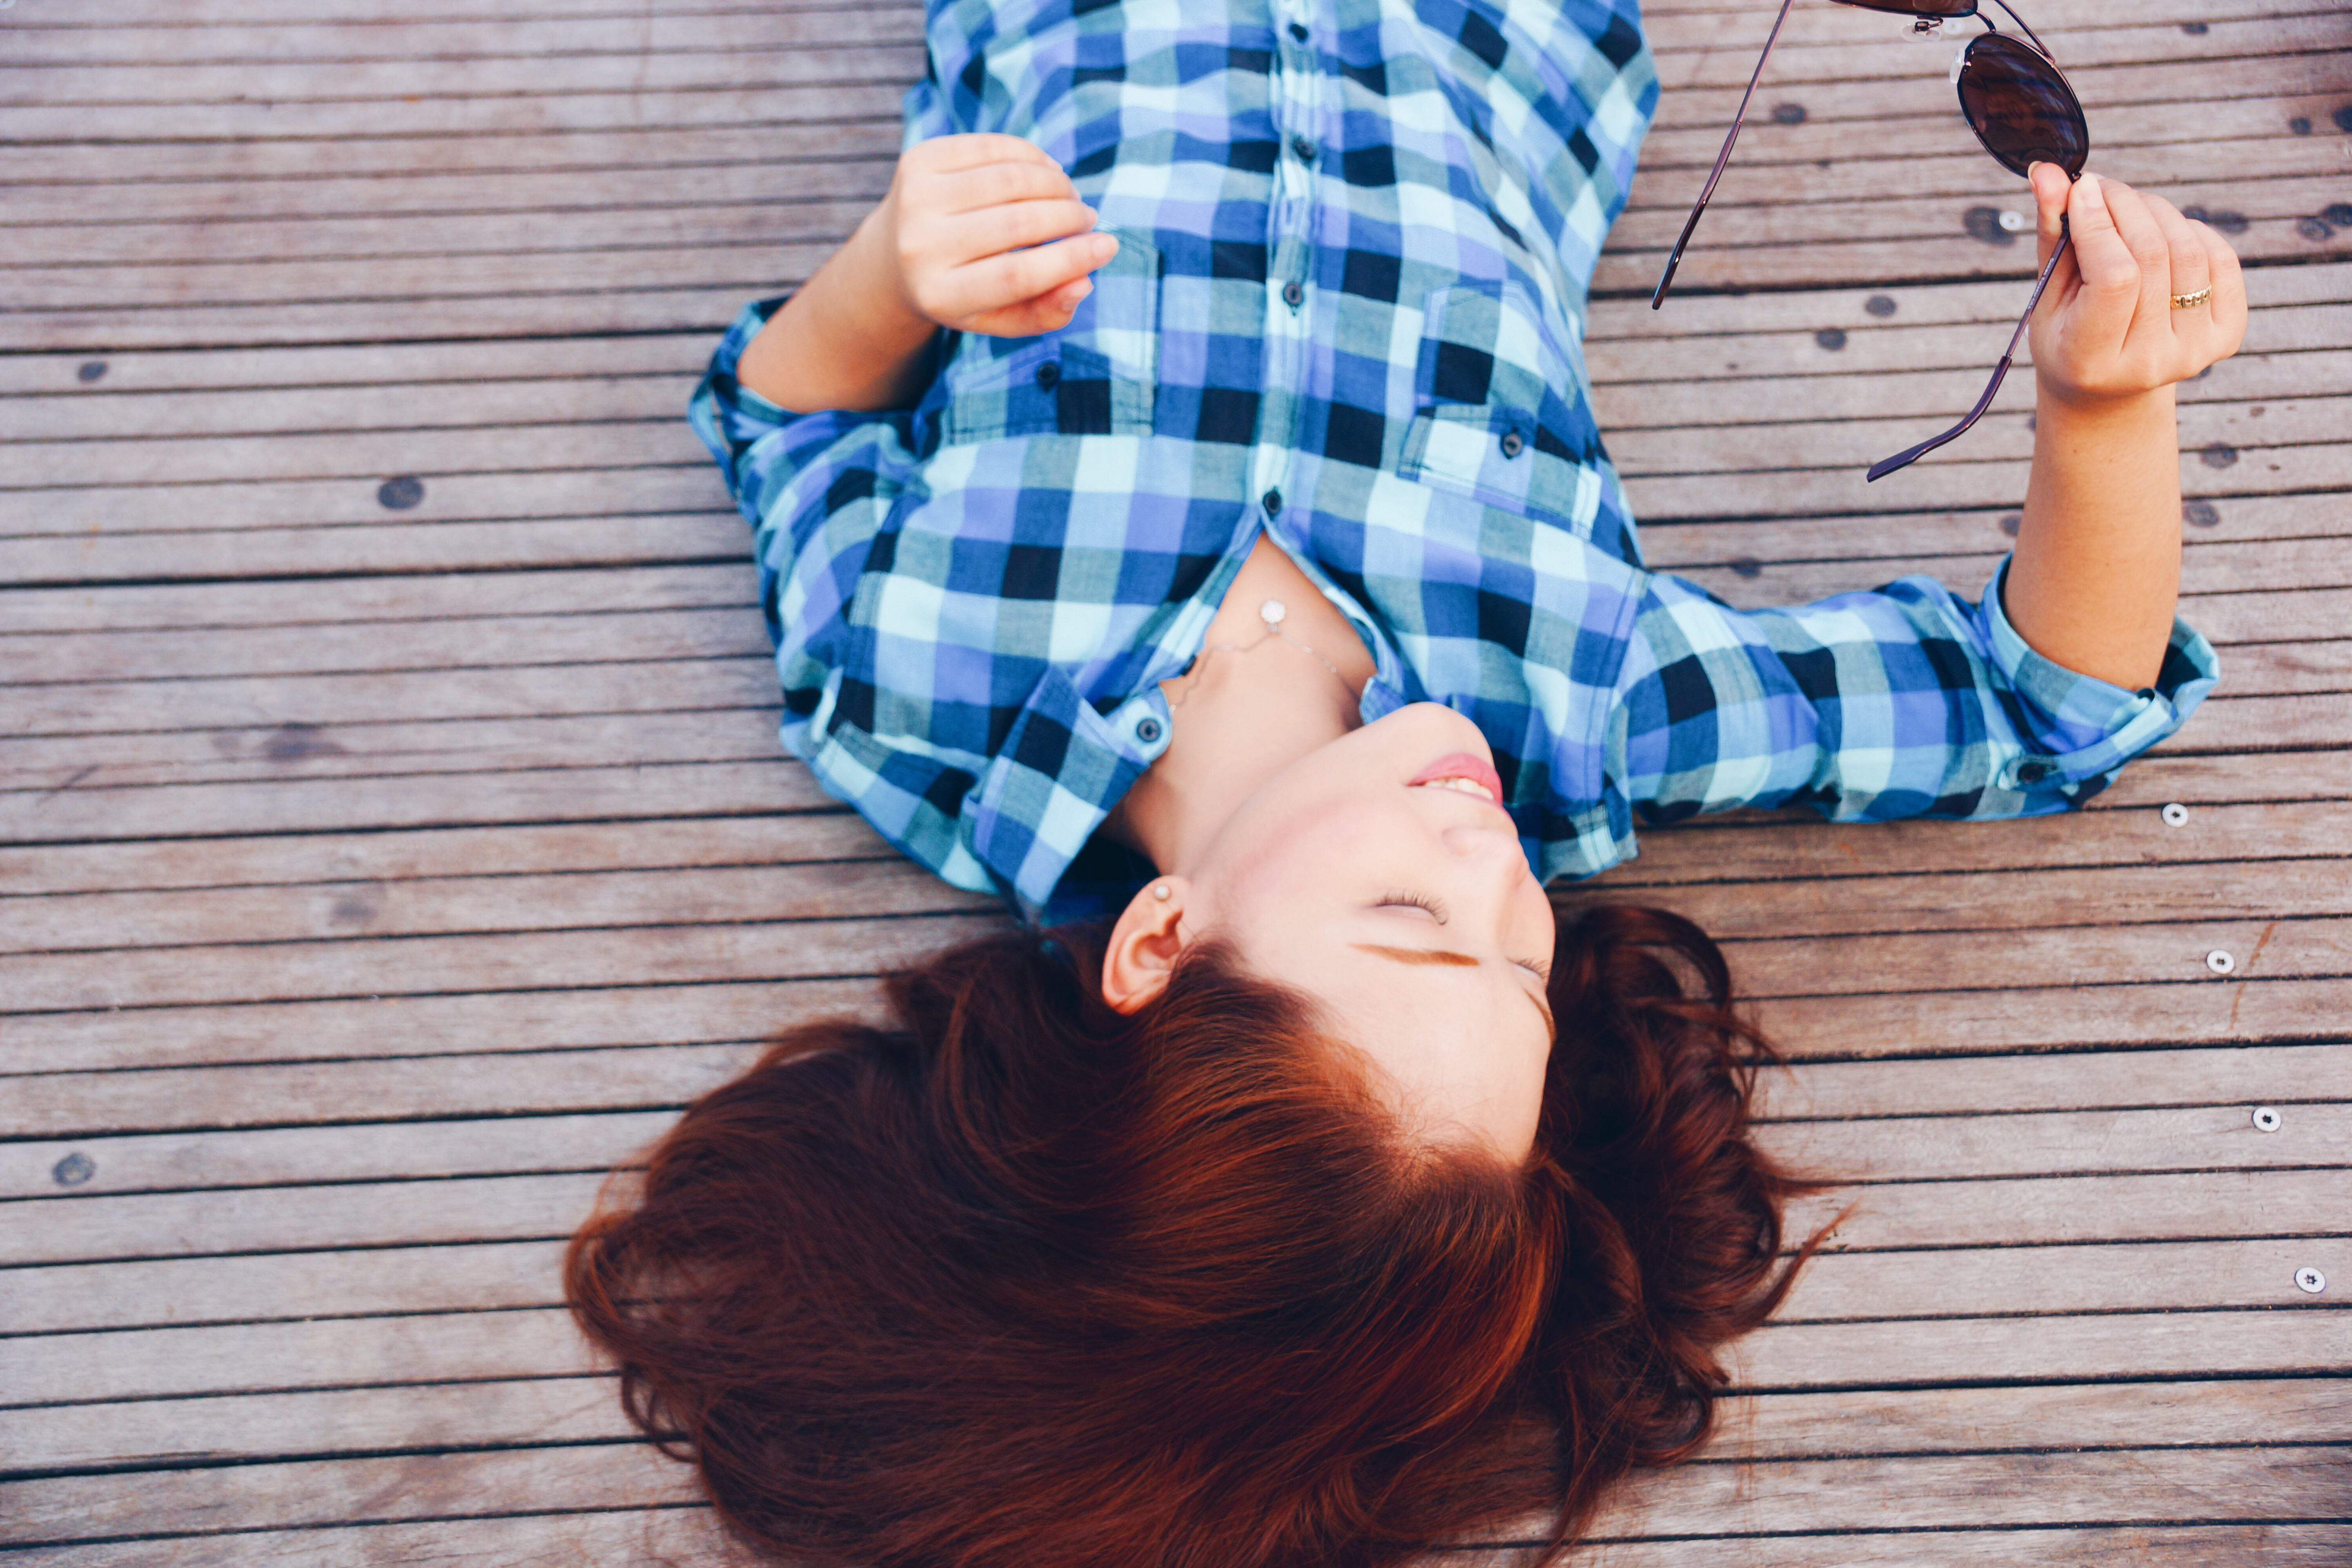 Woman Lying on Wooden Surface Holding Sunglasses